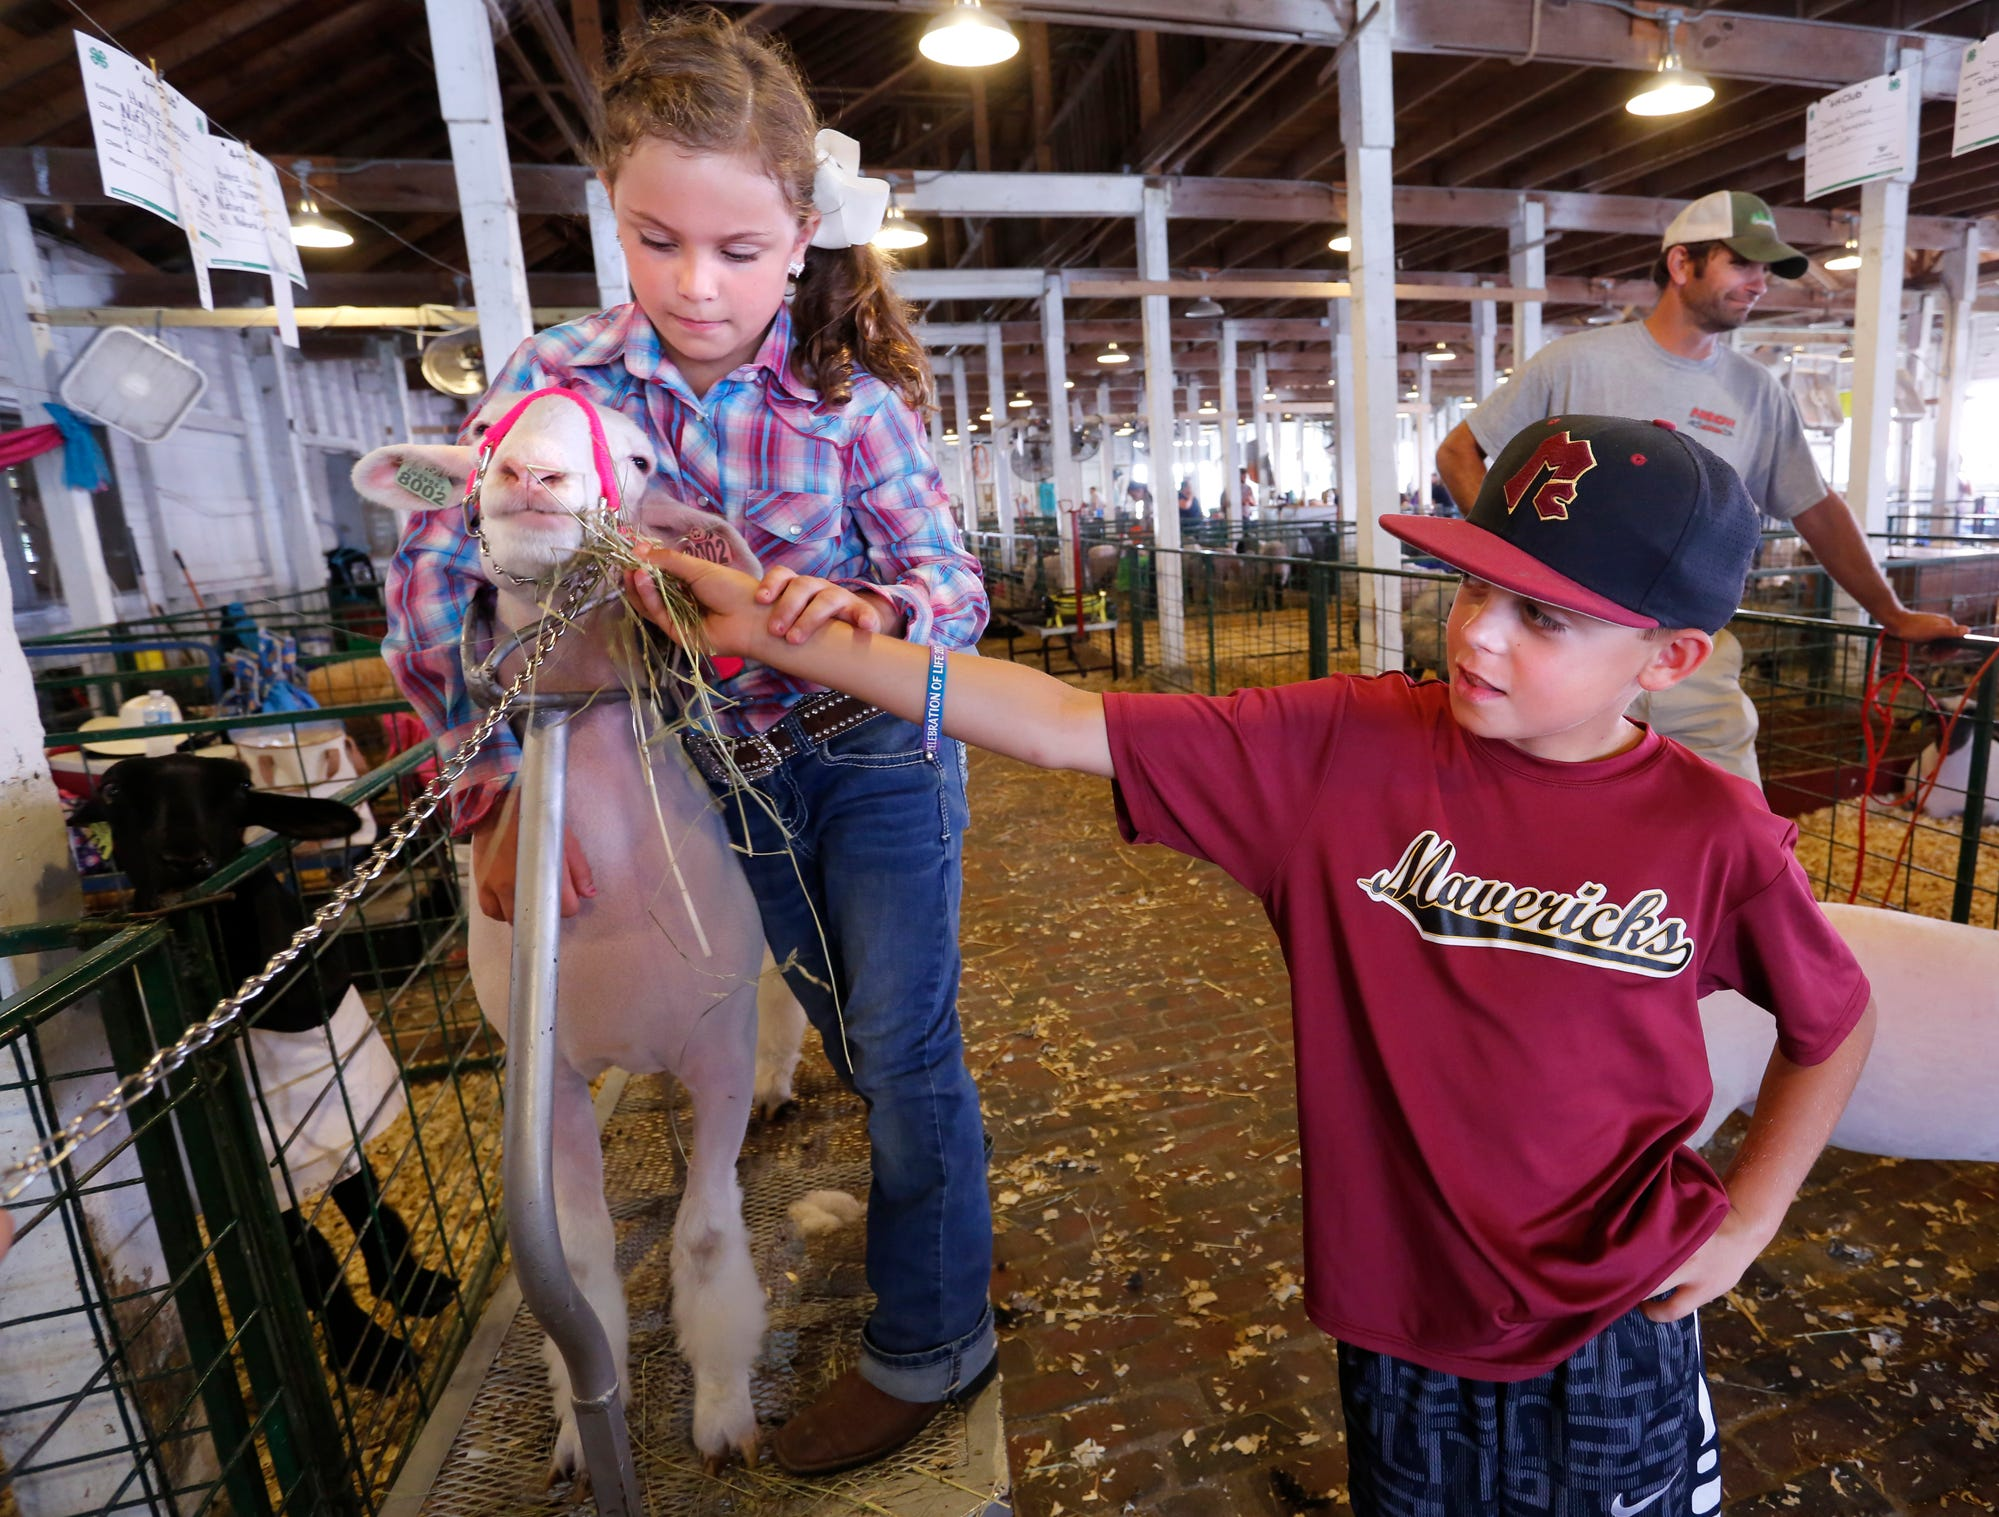 Cason Trader, 9, offers some hay for Rose, a sheep belonging to Haylee Greener, 9, at the Tippecanoe County 4-H Fair Monday, July 23, 2018, in Lafayette. Greener was preparing to show Rose in beginner showmanship. Greener and Trade will both be fourth grade students at Mintonye Elementary School in the fall.